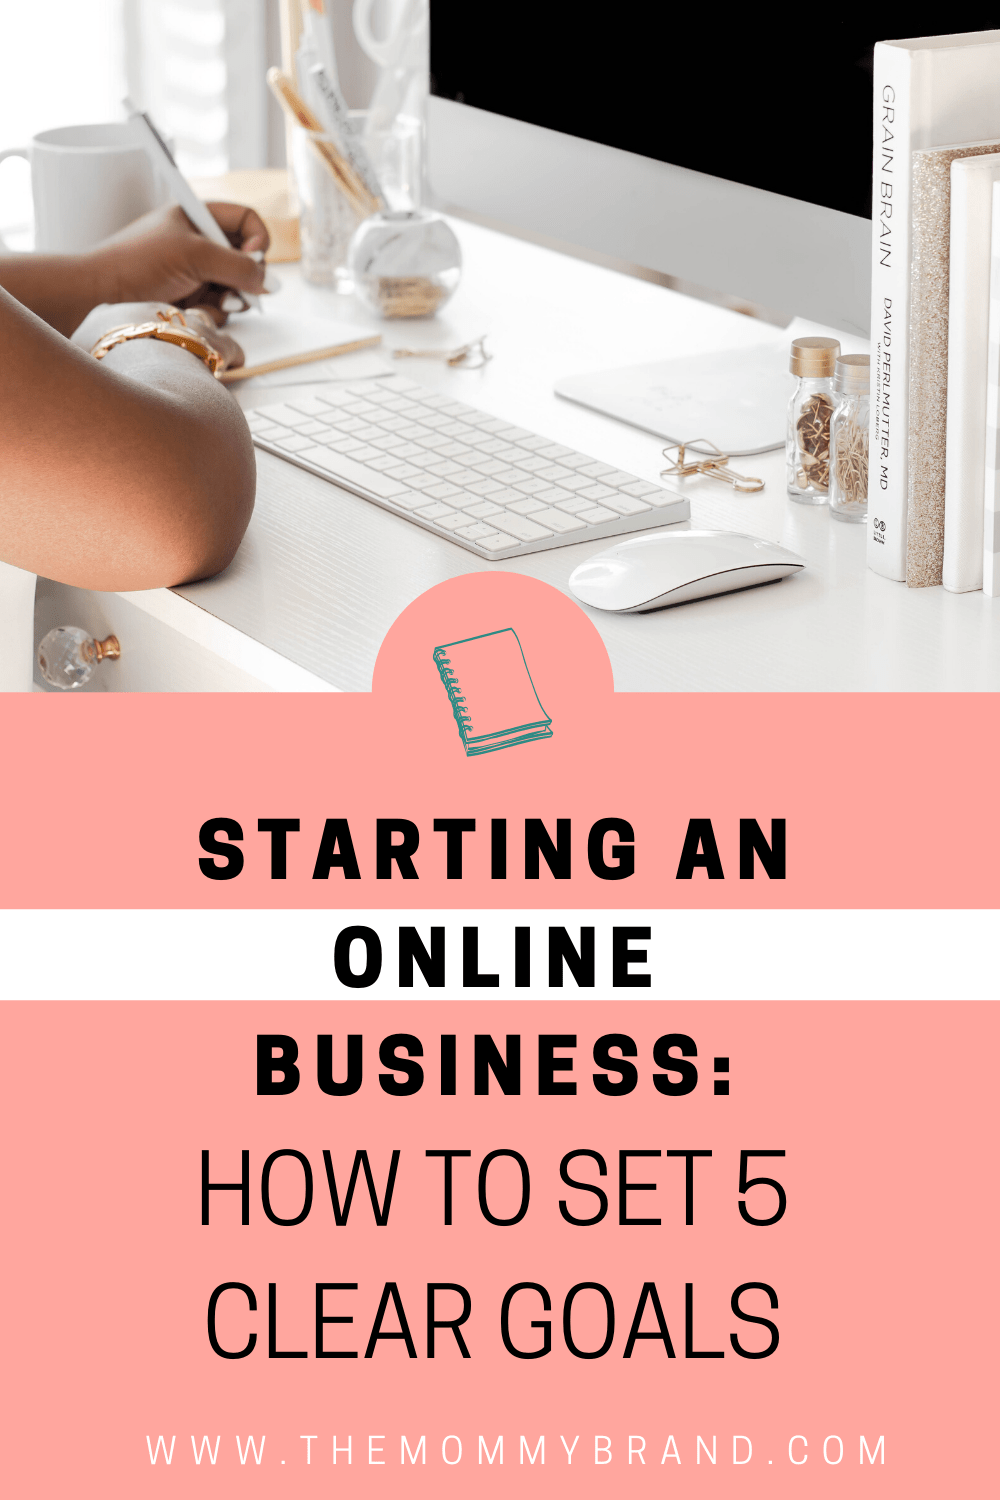 Starting an online business: How to Set 5 Clear Goals